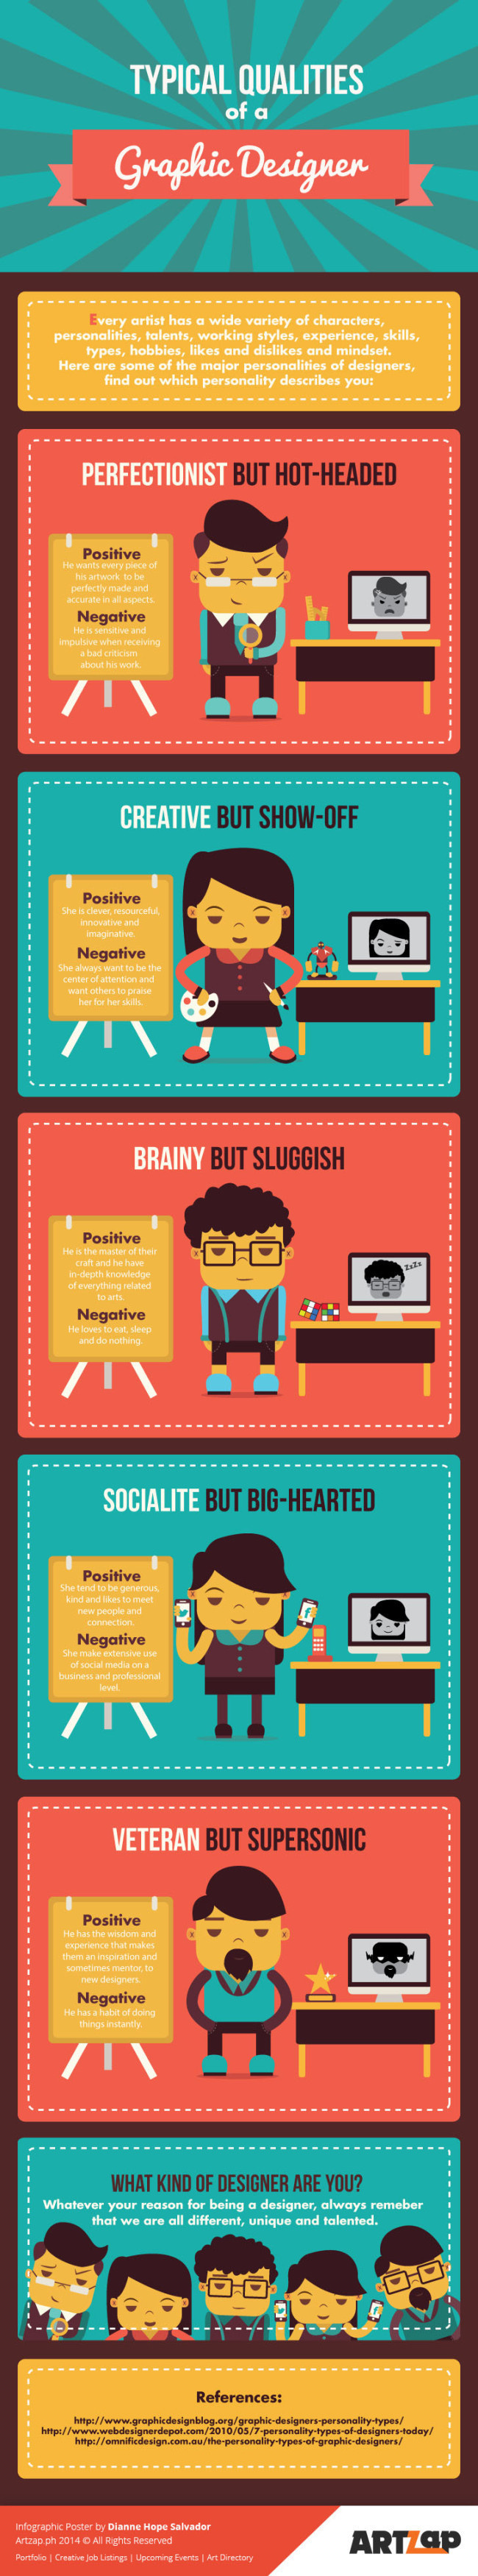 5 Characters Types of a Graphic Designer